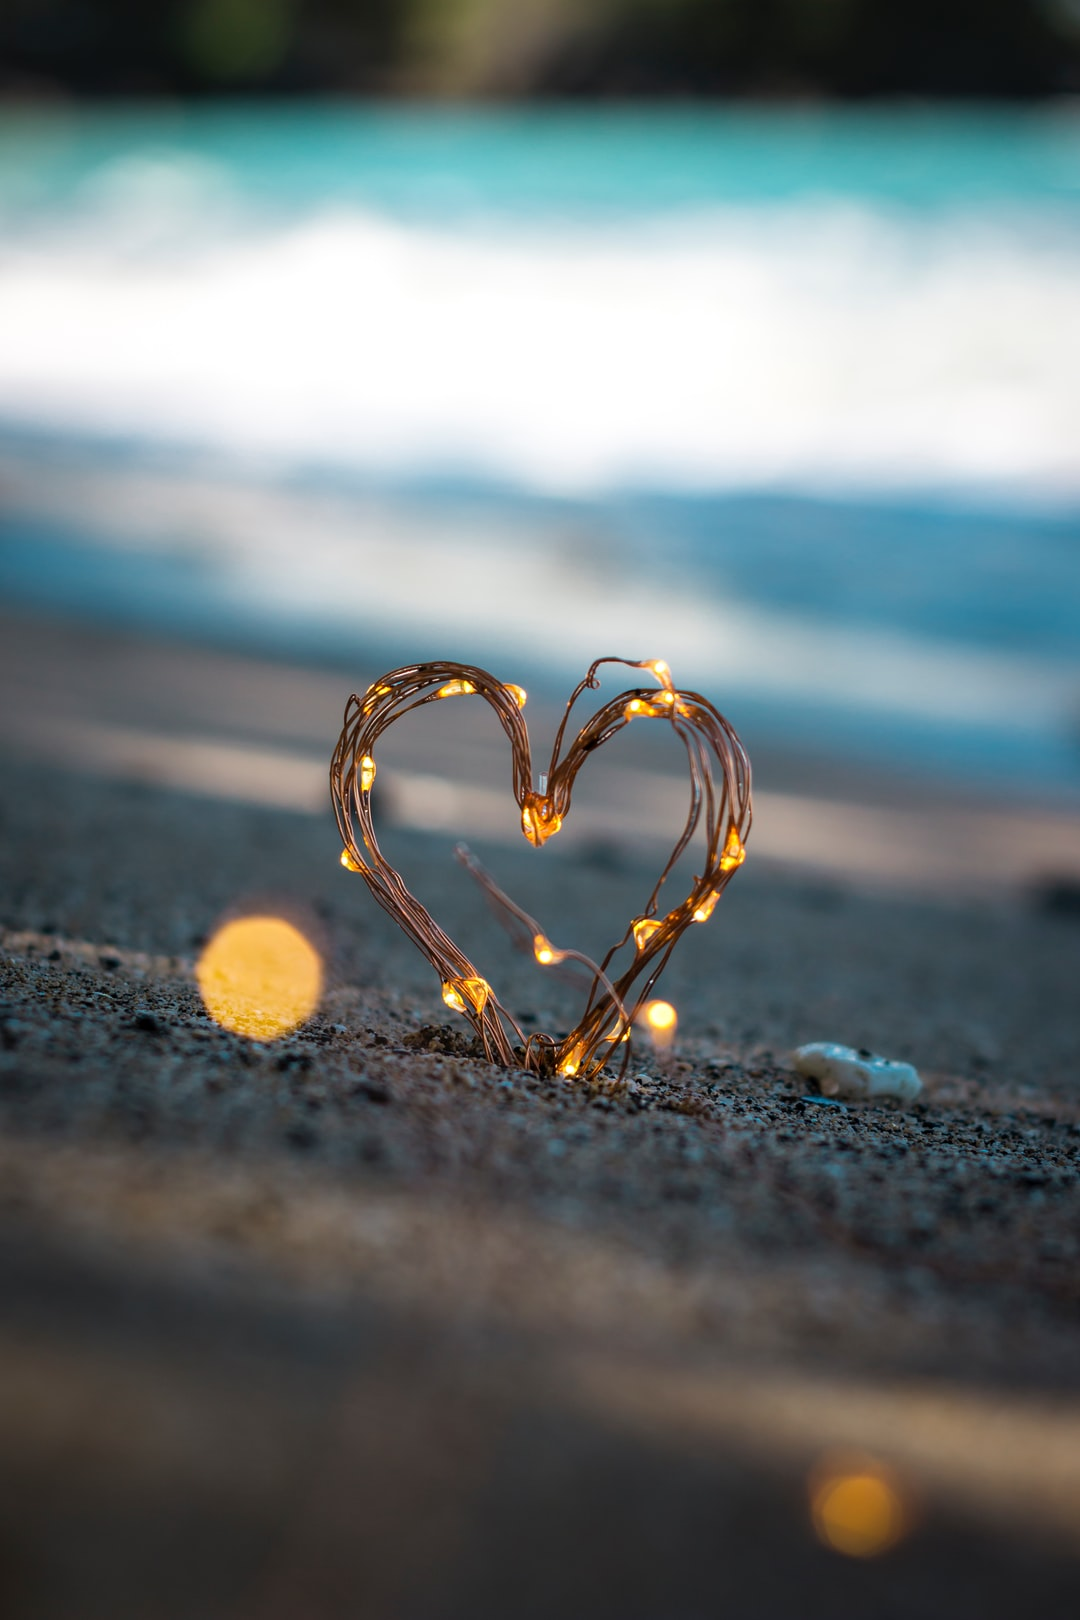 100+ Love Images [HD] | Download Free Professional Photos on